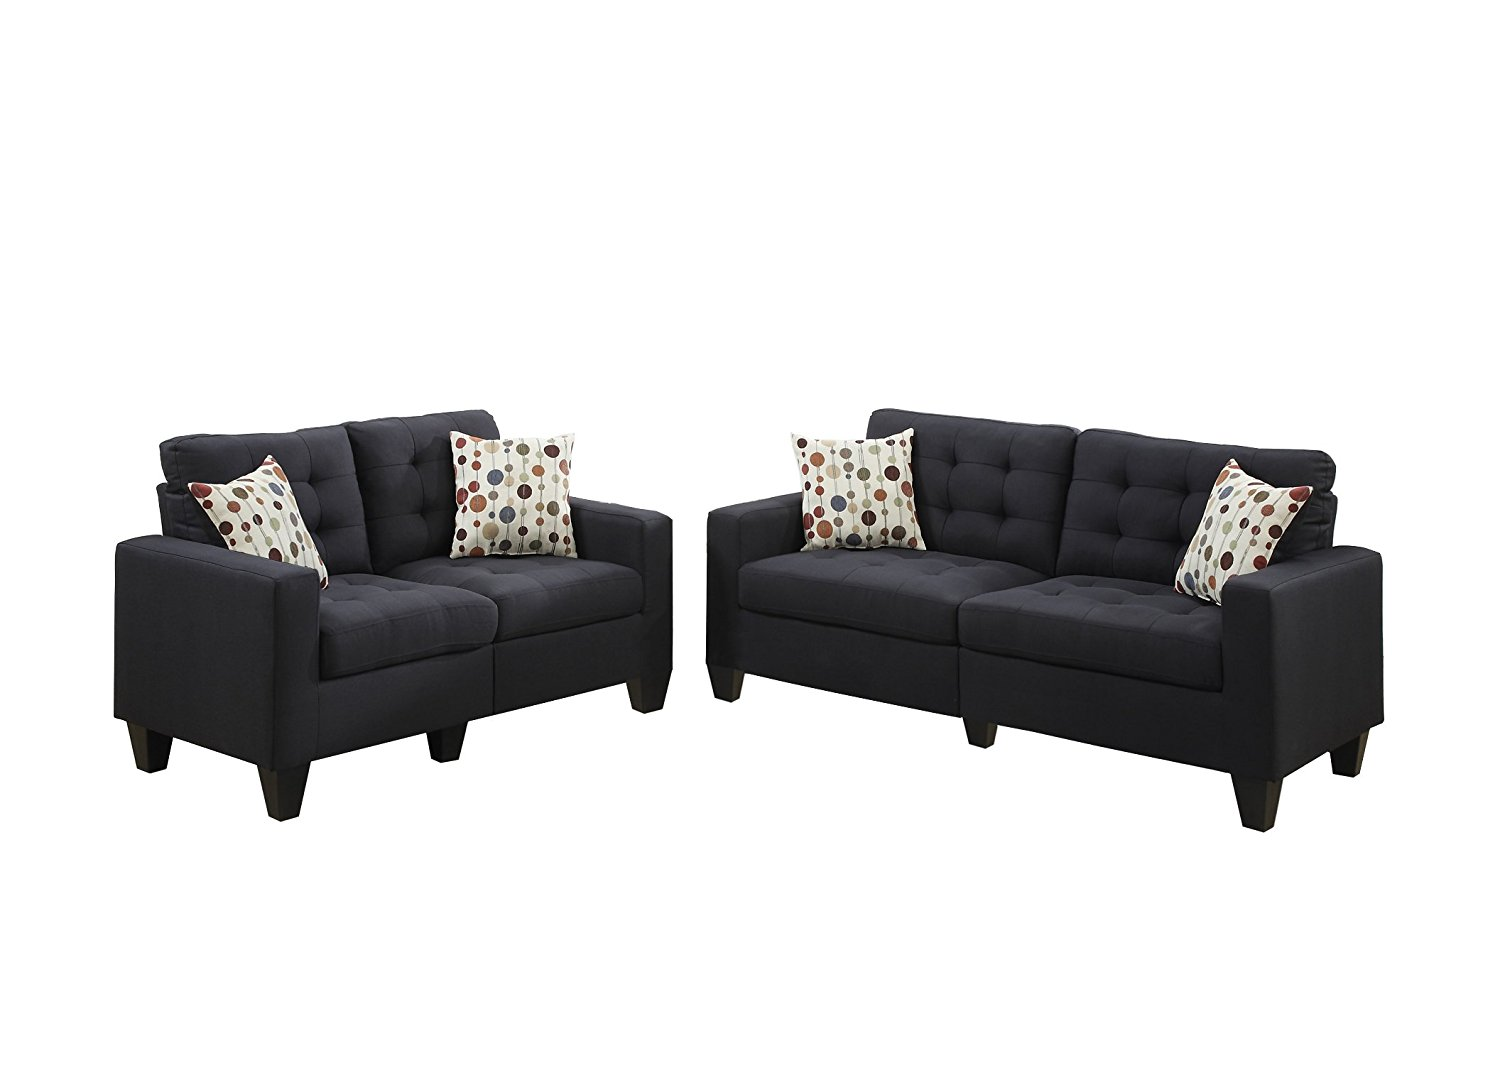 Bobkona Windsor Elite Linen Like 2 Piece Sofa And Loveseat